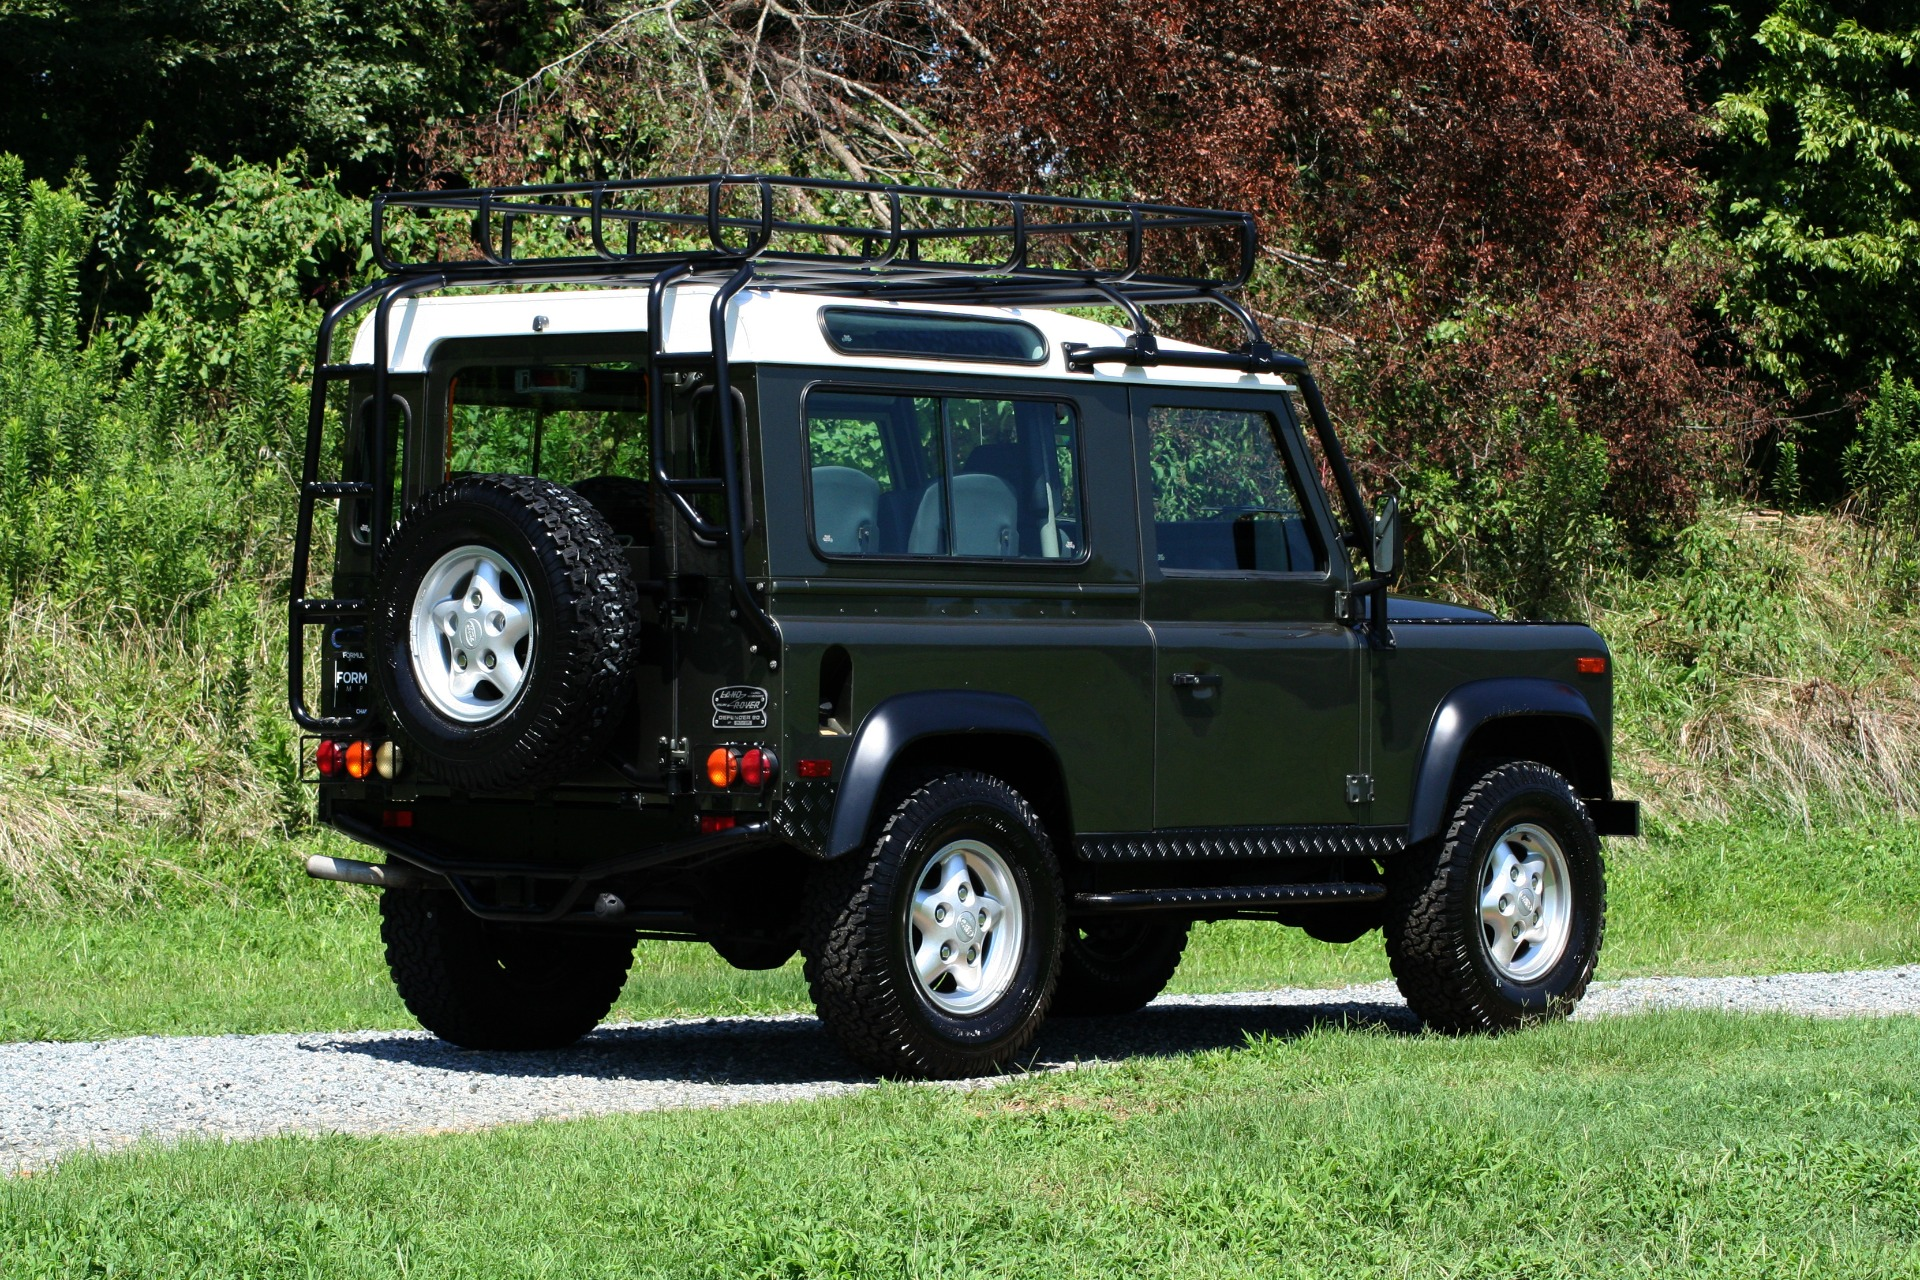 Used 1997 Land Rover DEFENDER 90 LIMITED EDITION 4X4 HARD-TOP for sale $139,999 at Formula Imports in Charlotte NC 28227 9